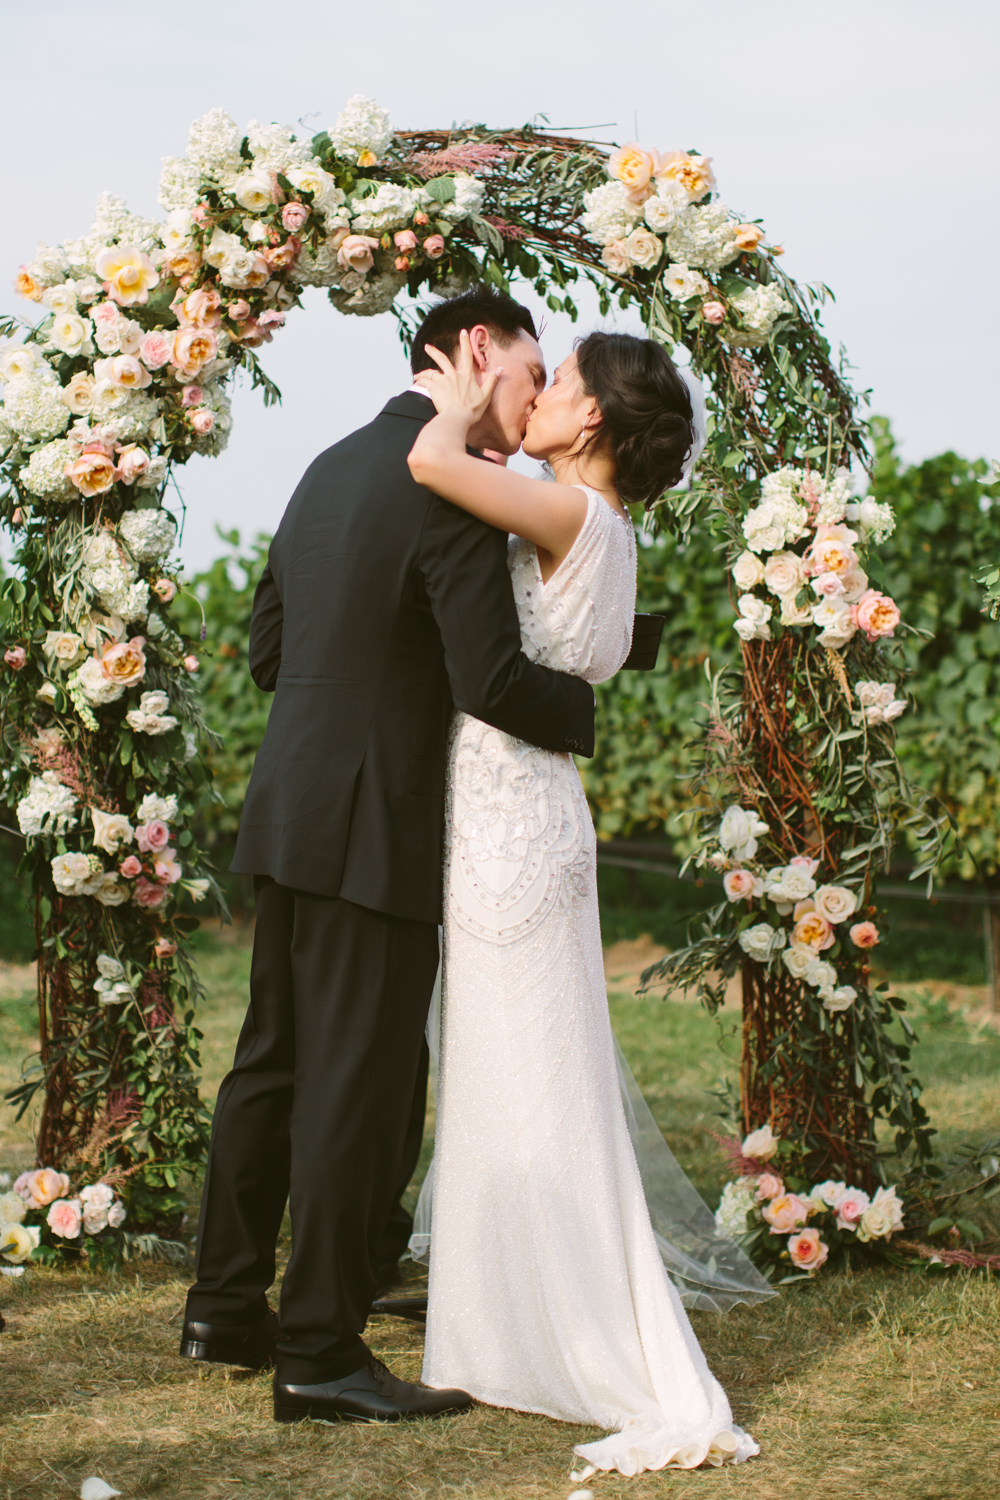 Bride and groom kiss in front of a floral archway